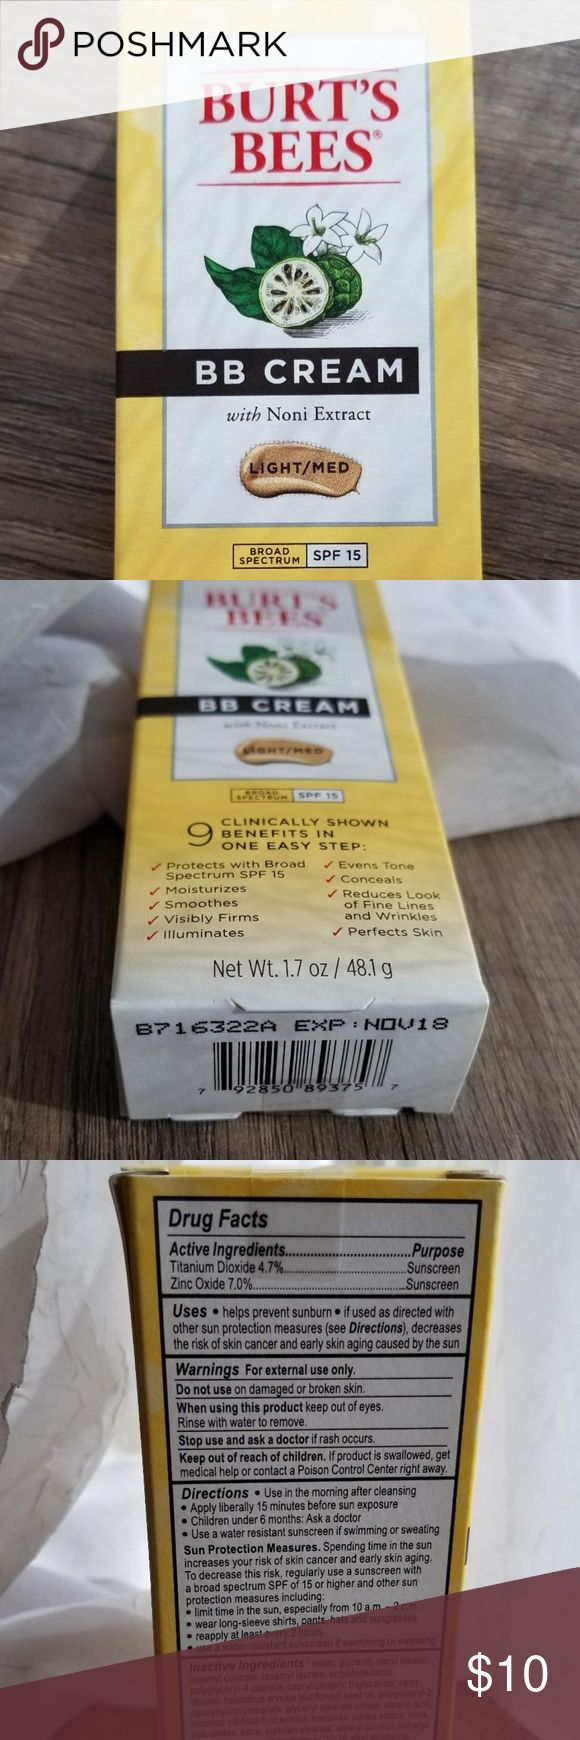 NEW Burt's Bees BB Cream in shade Light/Medium New in box, never used.  Items include: -One full-size Burt's Bees BB Cream with noni extract in shade Light/Medium, 1.7 oz, new in box, expiration date November 2018 From pet and smoke-free home. If you have any questions let me know! Thank you for looking :) Burt's Bees Makeup Foundation